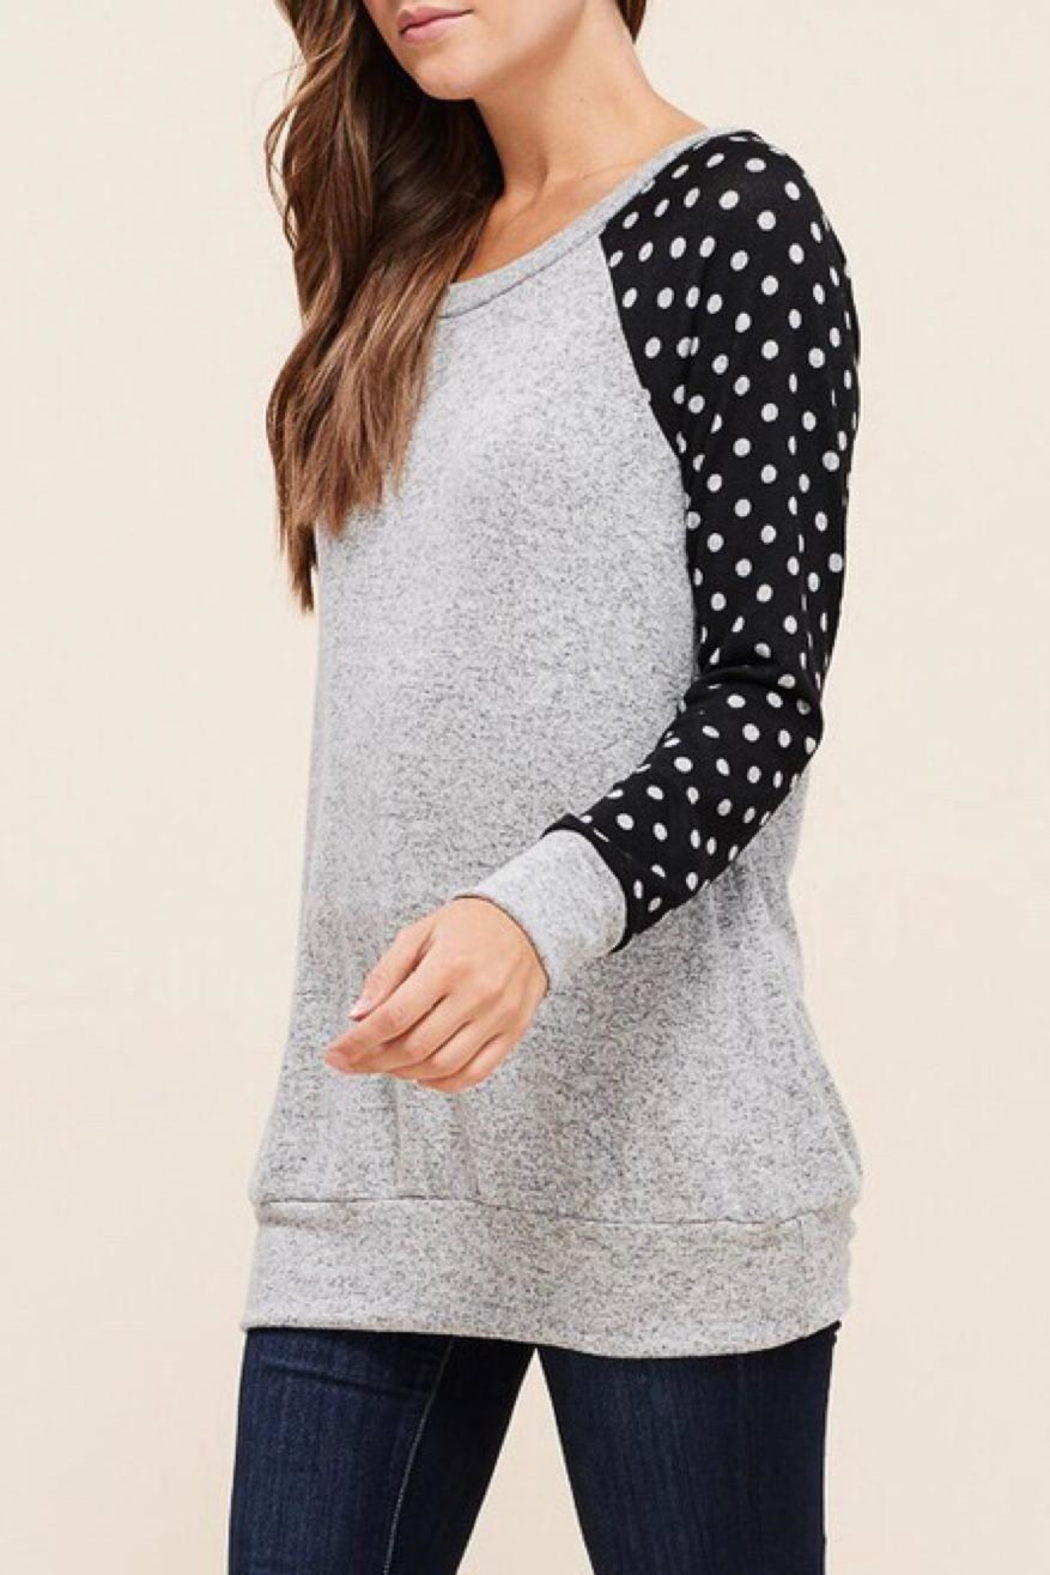 LuLu's Boutique Polka-Dot Sleeve Top - Front Full Image